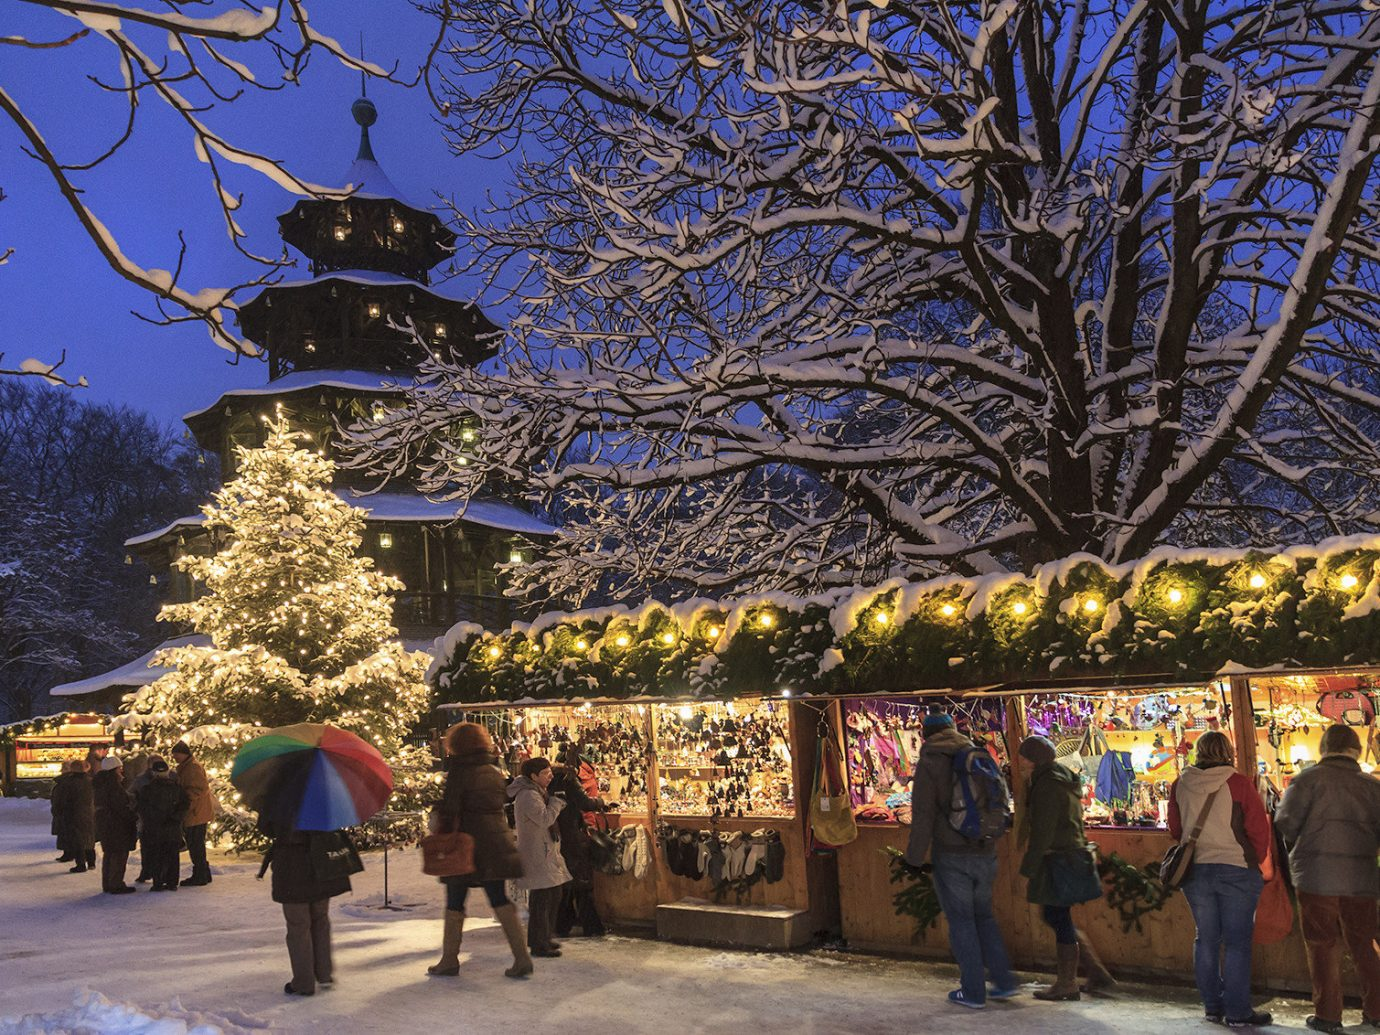 Trip Ideas tree outdoor people group flower evening Christmas christmas decoration crowd line several